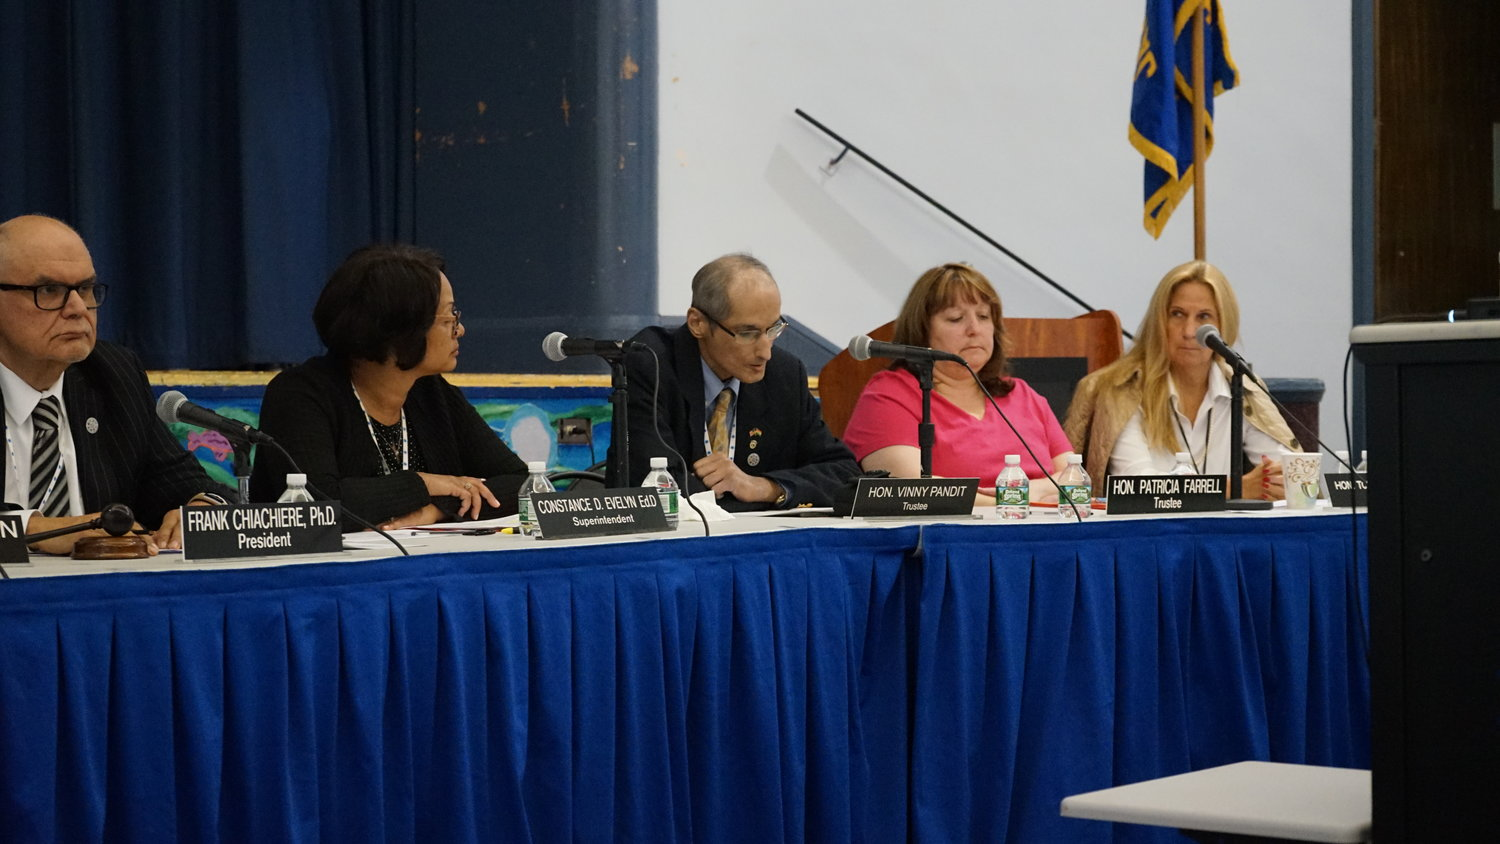 District 13 Board of Education Trustee Vinny Pandit, third from left, has tendered his resignation after a series of controversial comments he made on social media.